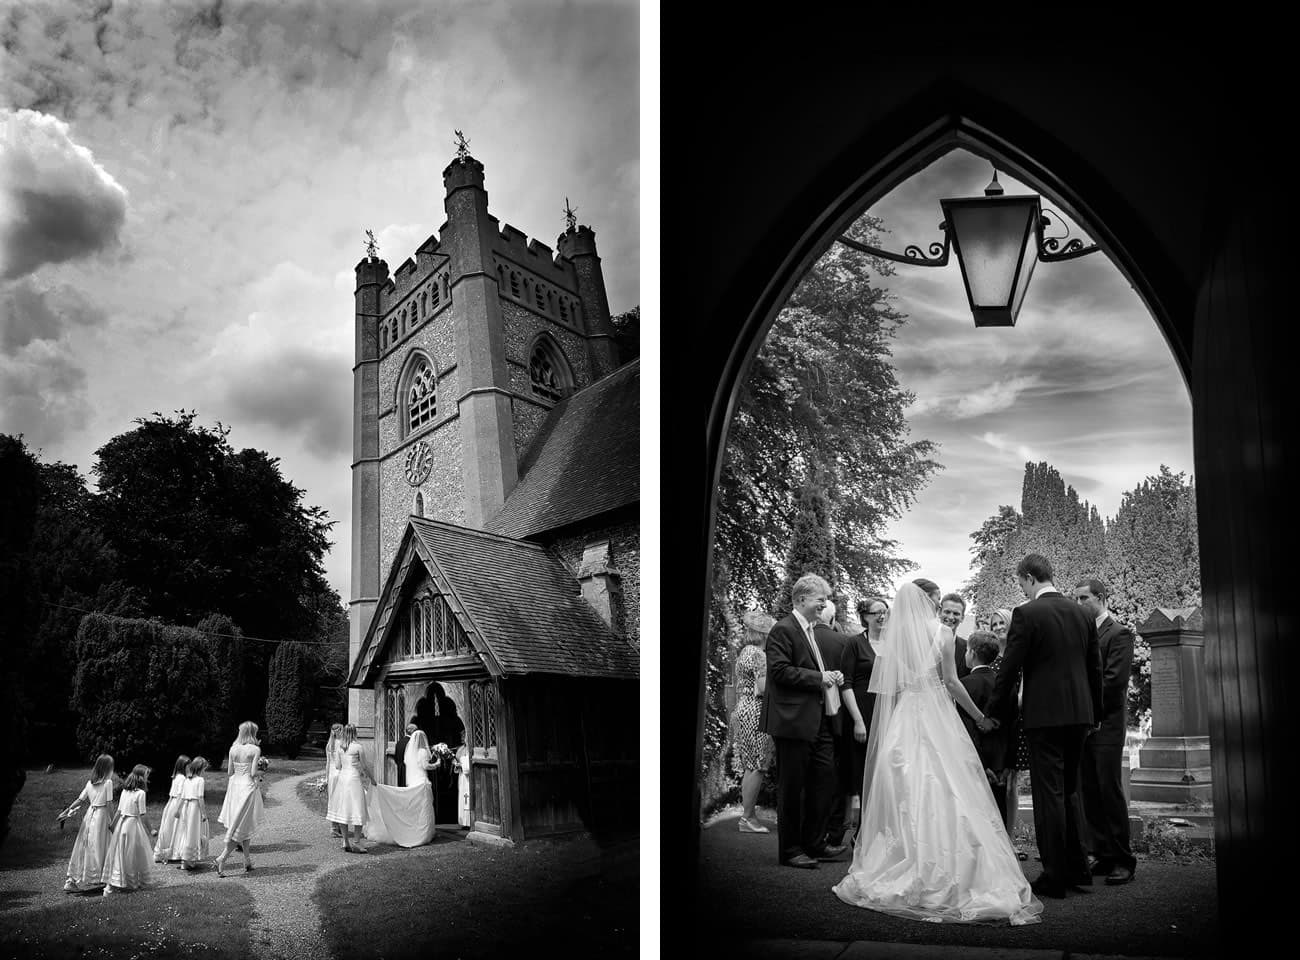 Documentary Wedding Photographer - Mark Seymour